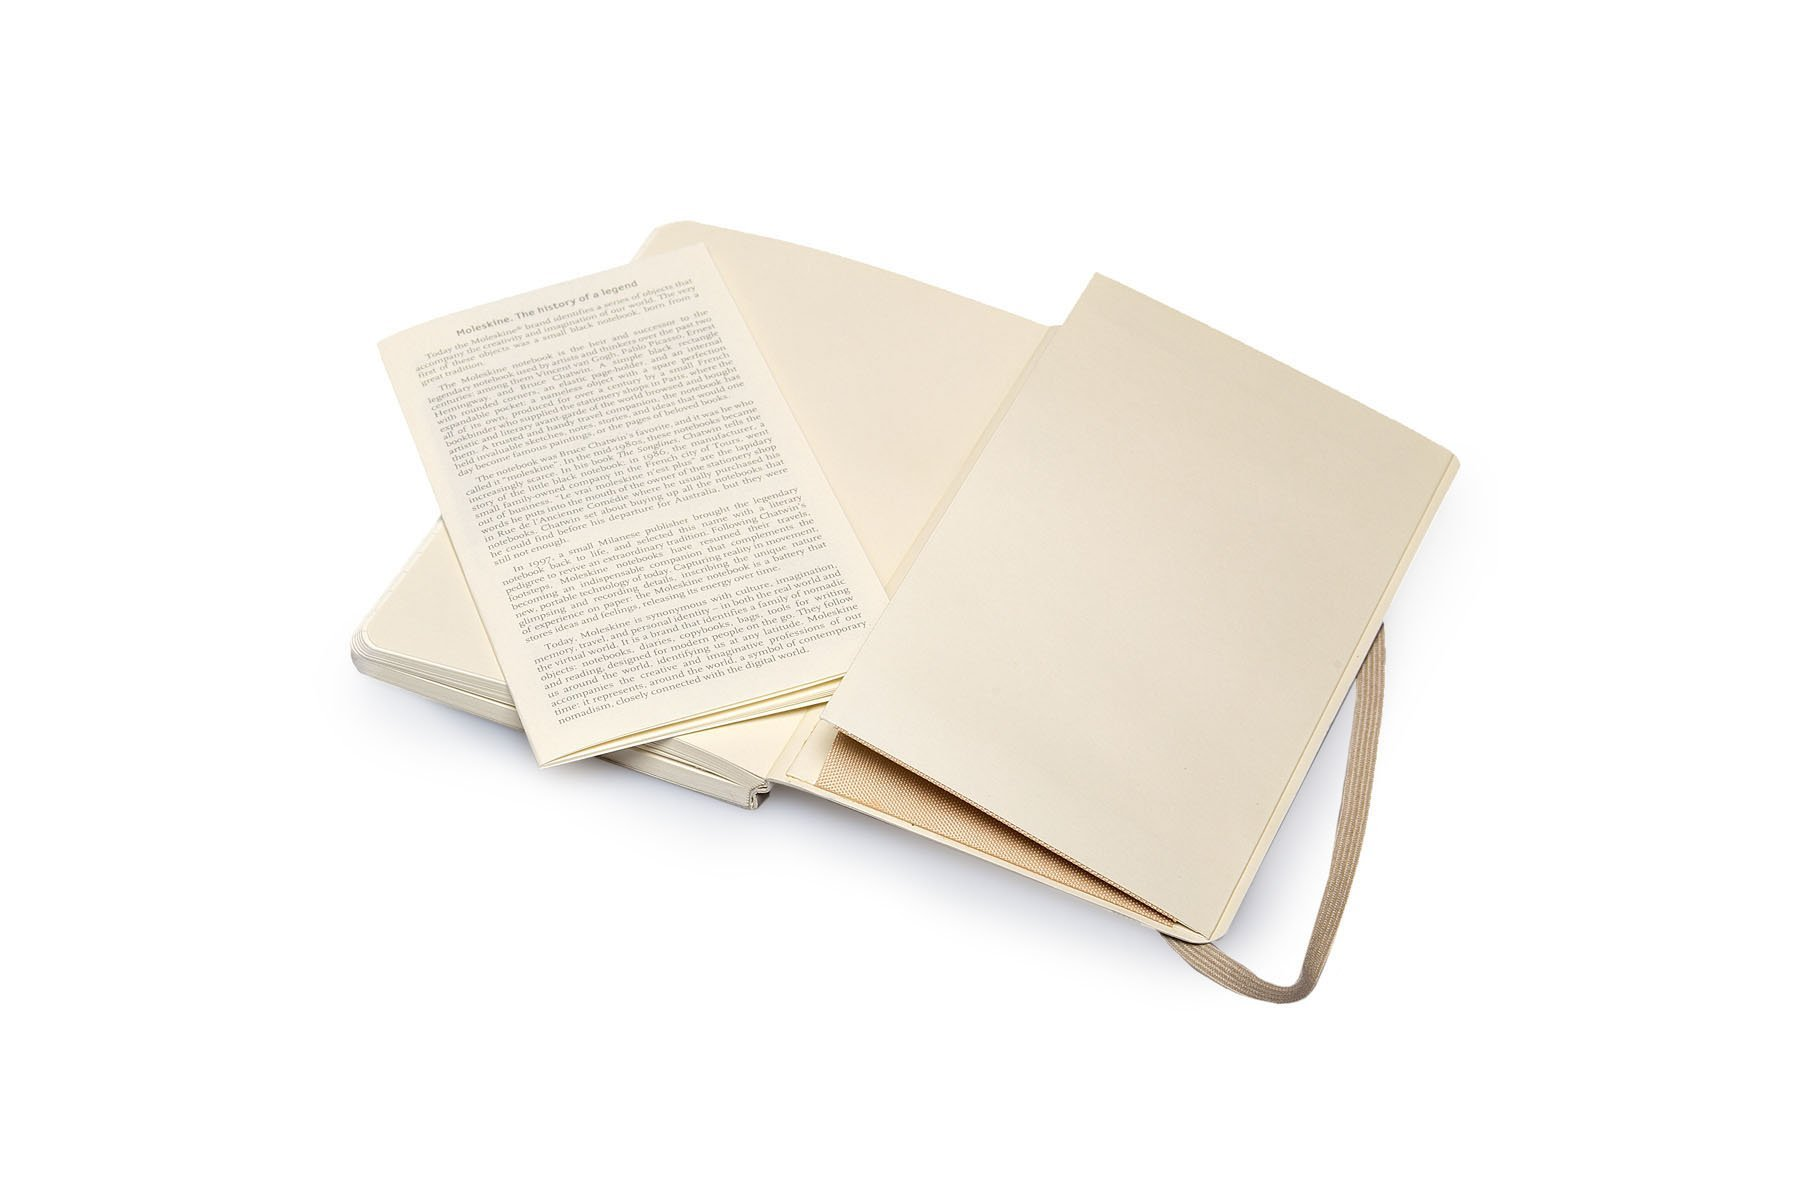 Pack of 3 Moleskine Classic Colored Notebook, Pocket, Ruled, Khaki Beige, Soft Cover (3.5 x 5.5)